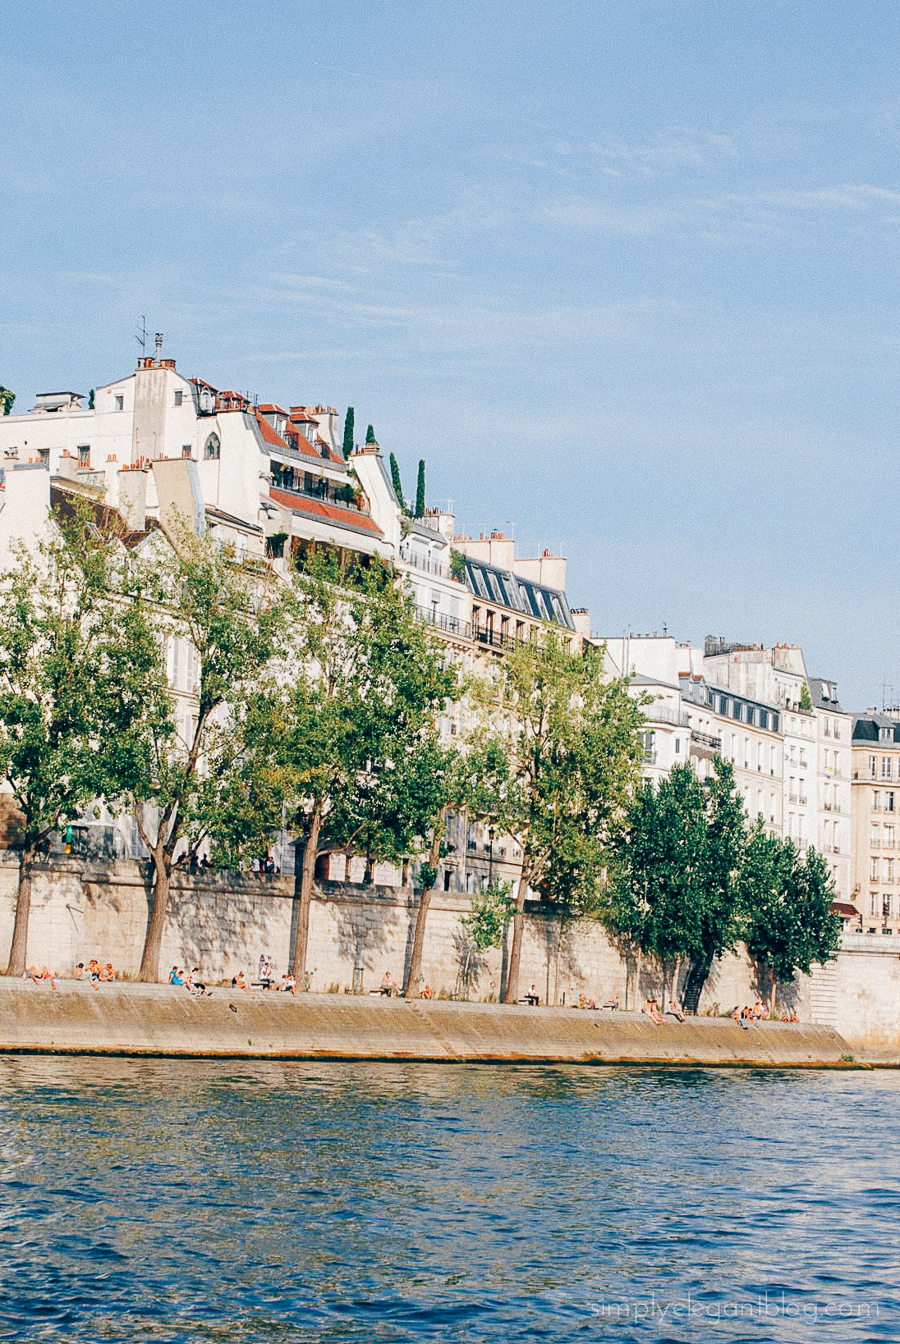 Simply Elegant / Paris Vacation Photographs - Seine River